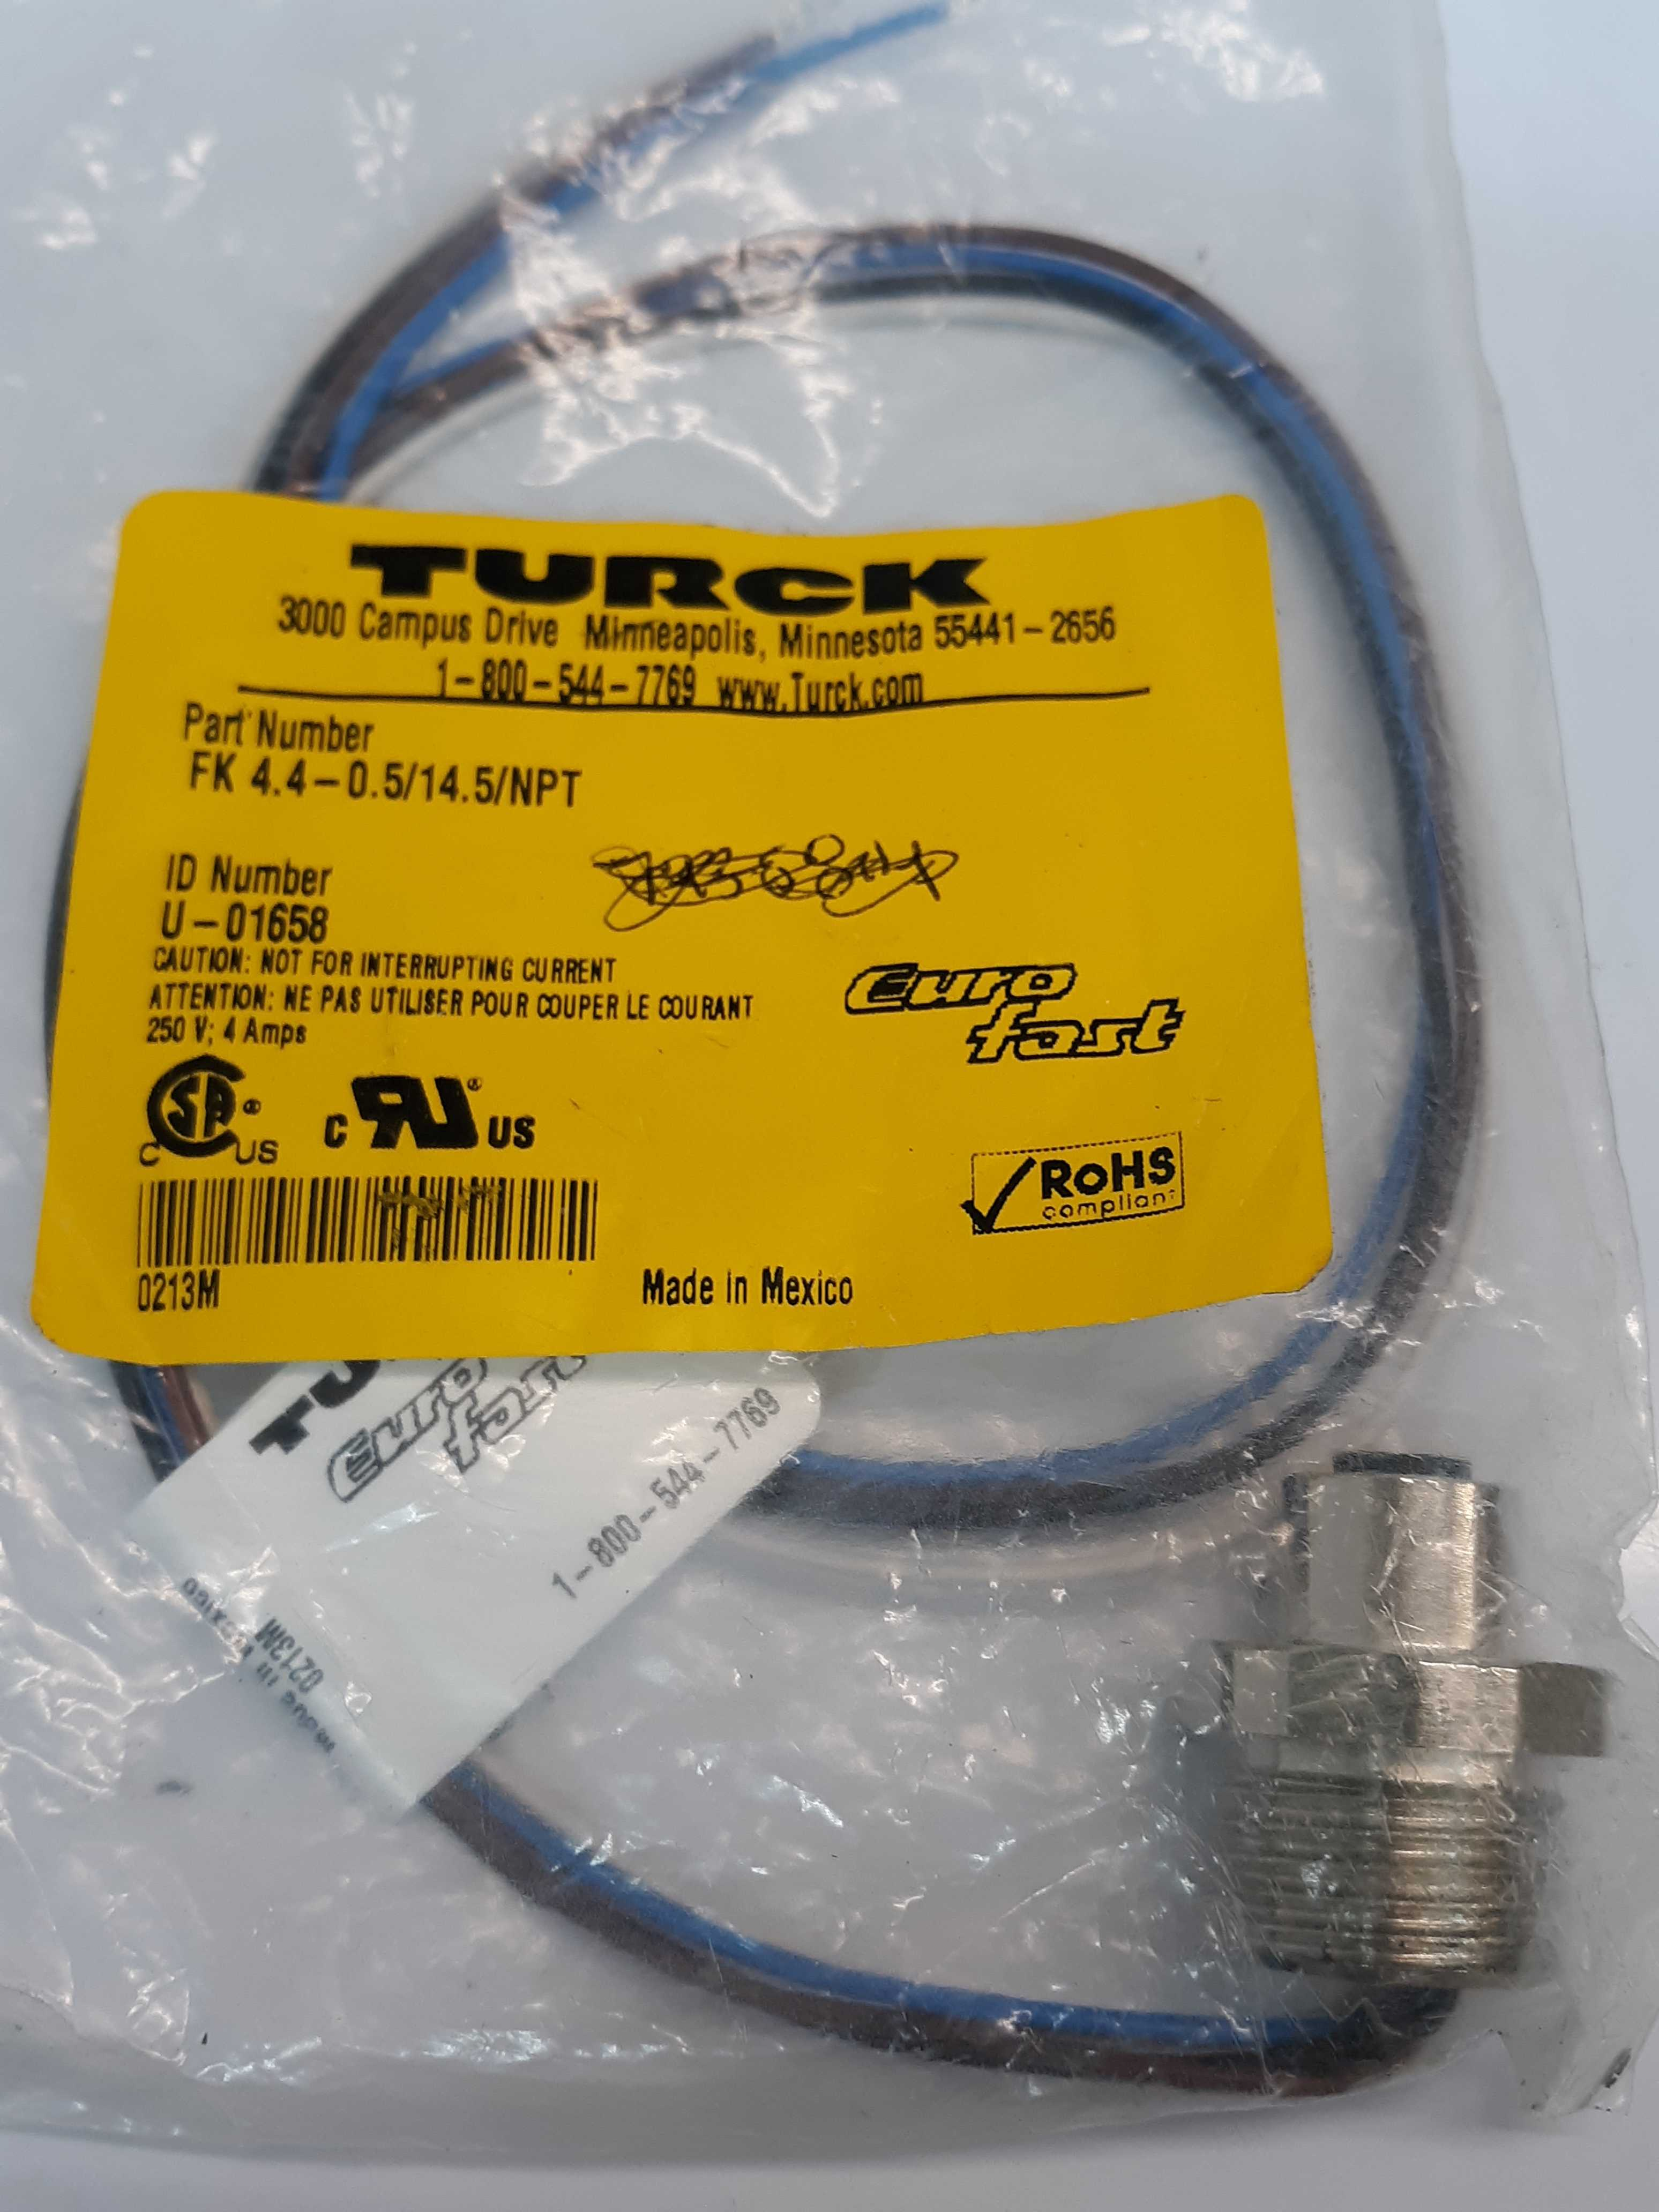 Turck Cord FK4.4-0.5/14.5/NPT Circular Female Connector To 4-Wire U-01658